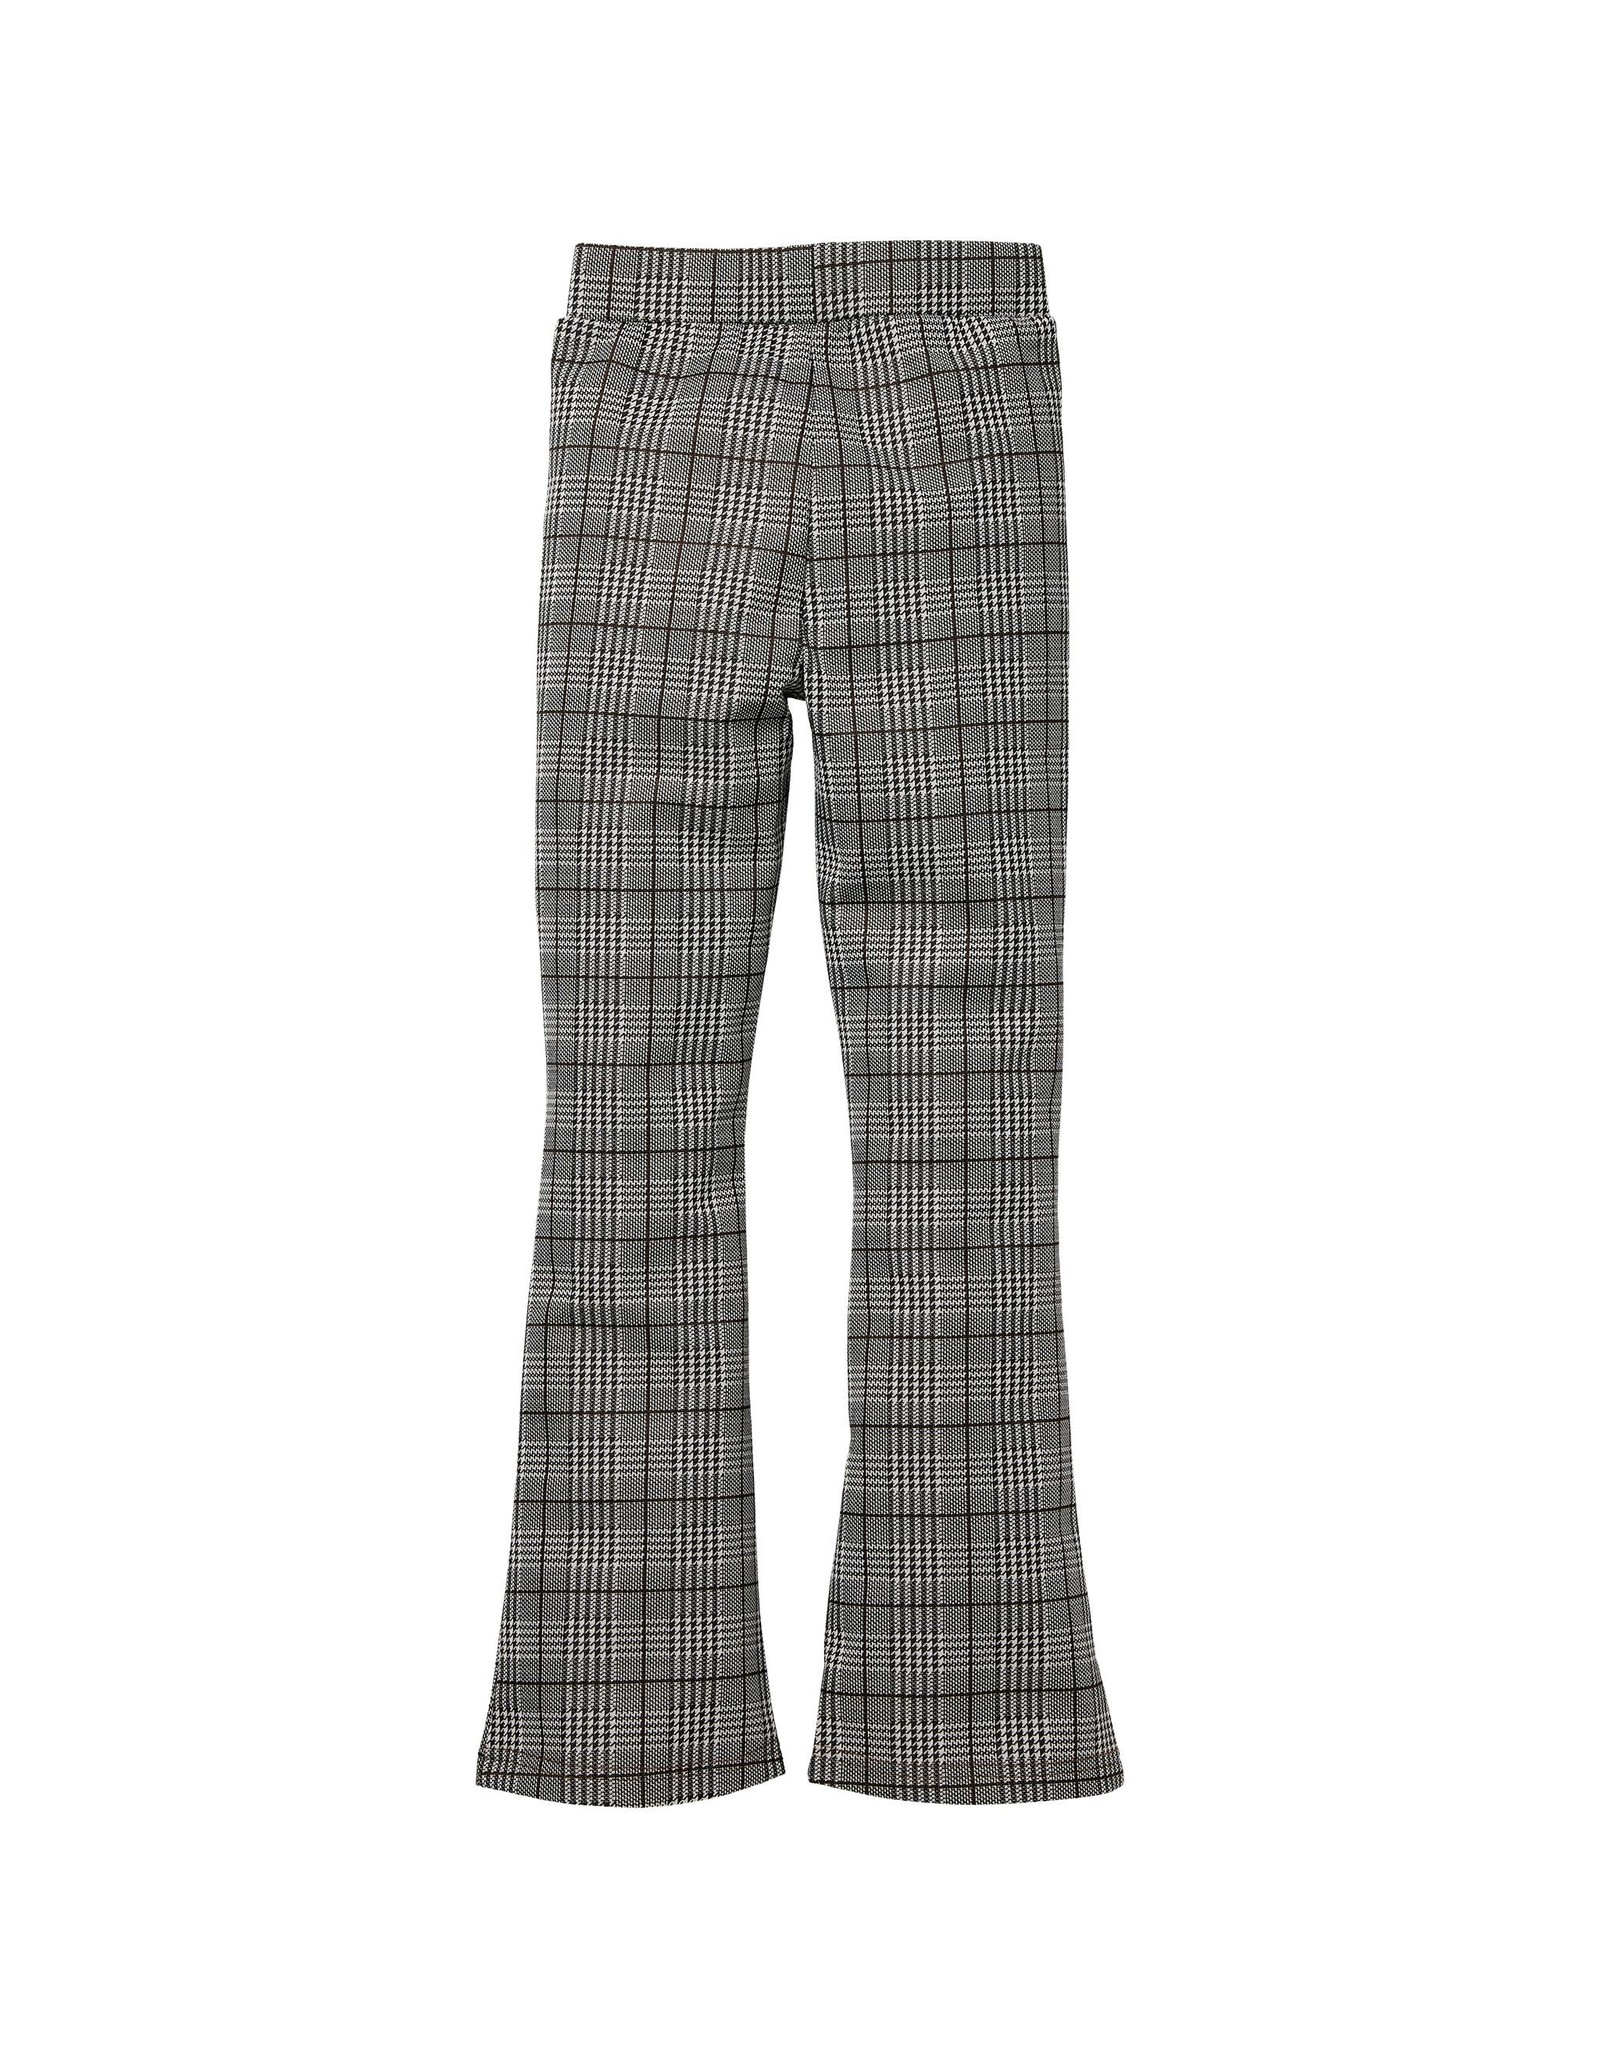 LEVV Levv meiden flaired pants Rox aop Brown Check